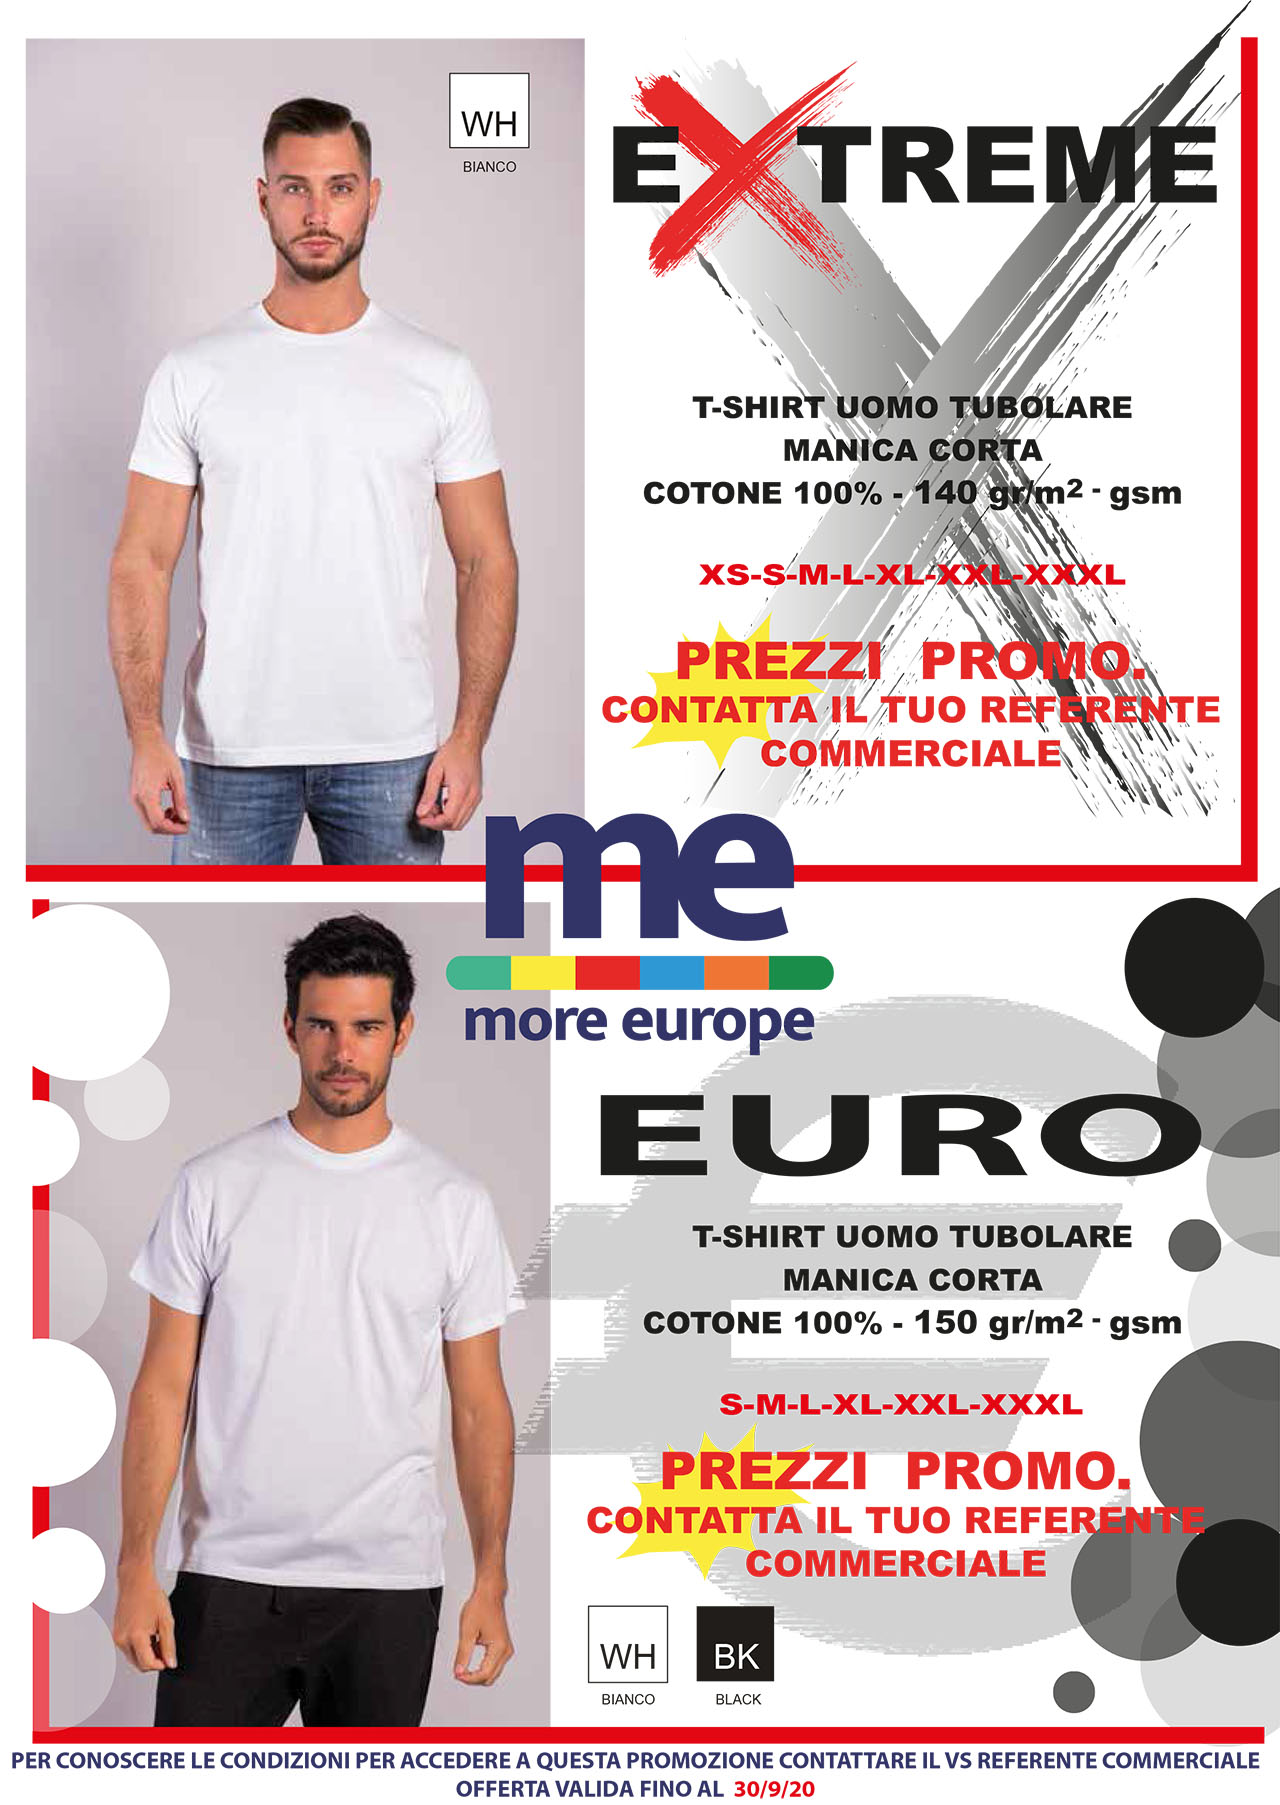 Euro Extreme banner